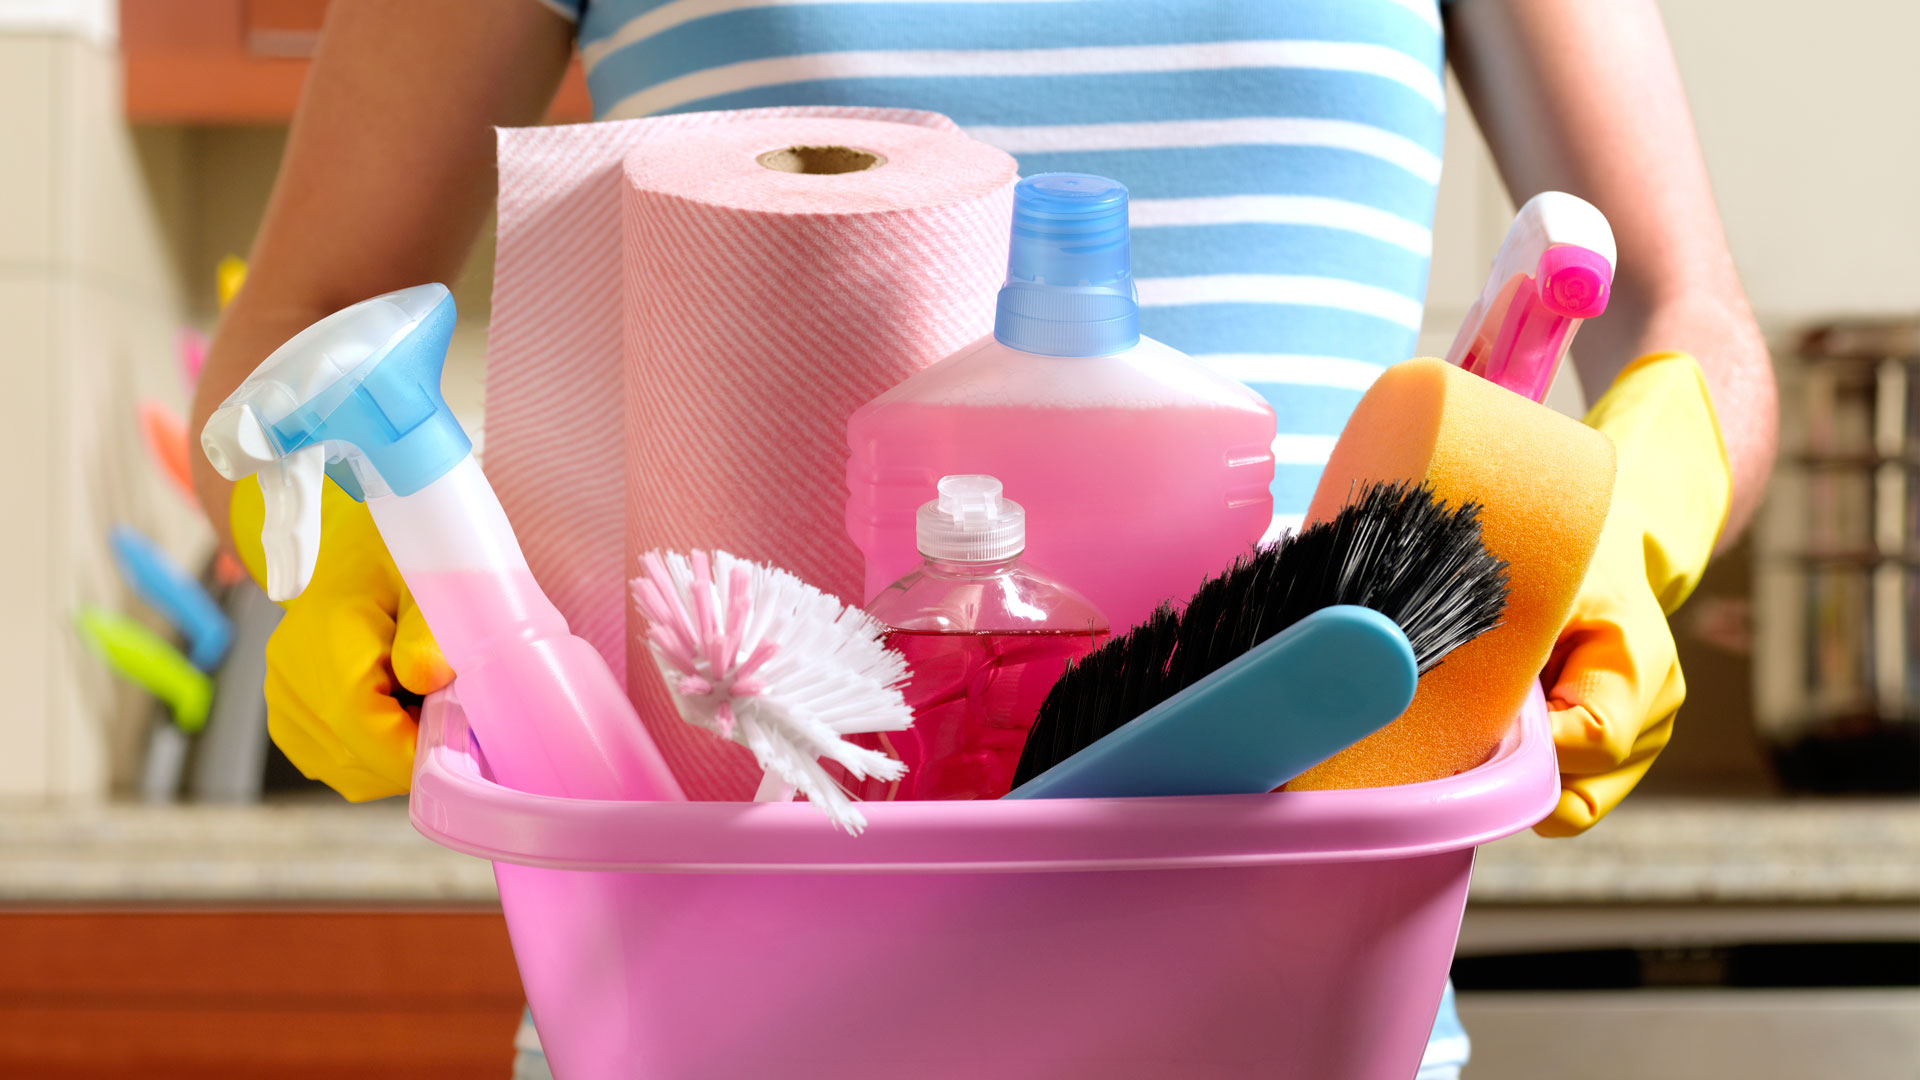 Getty Cleaning Supplies In Pink Bucket Image